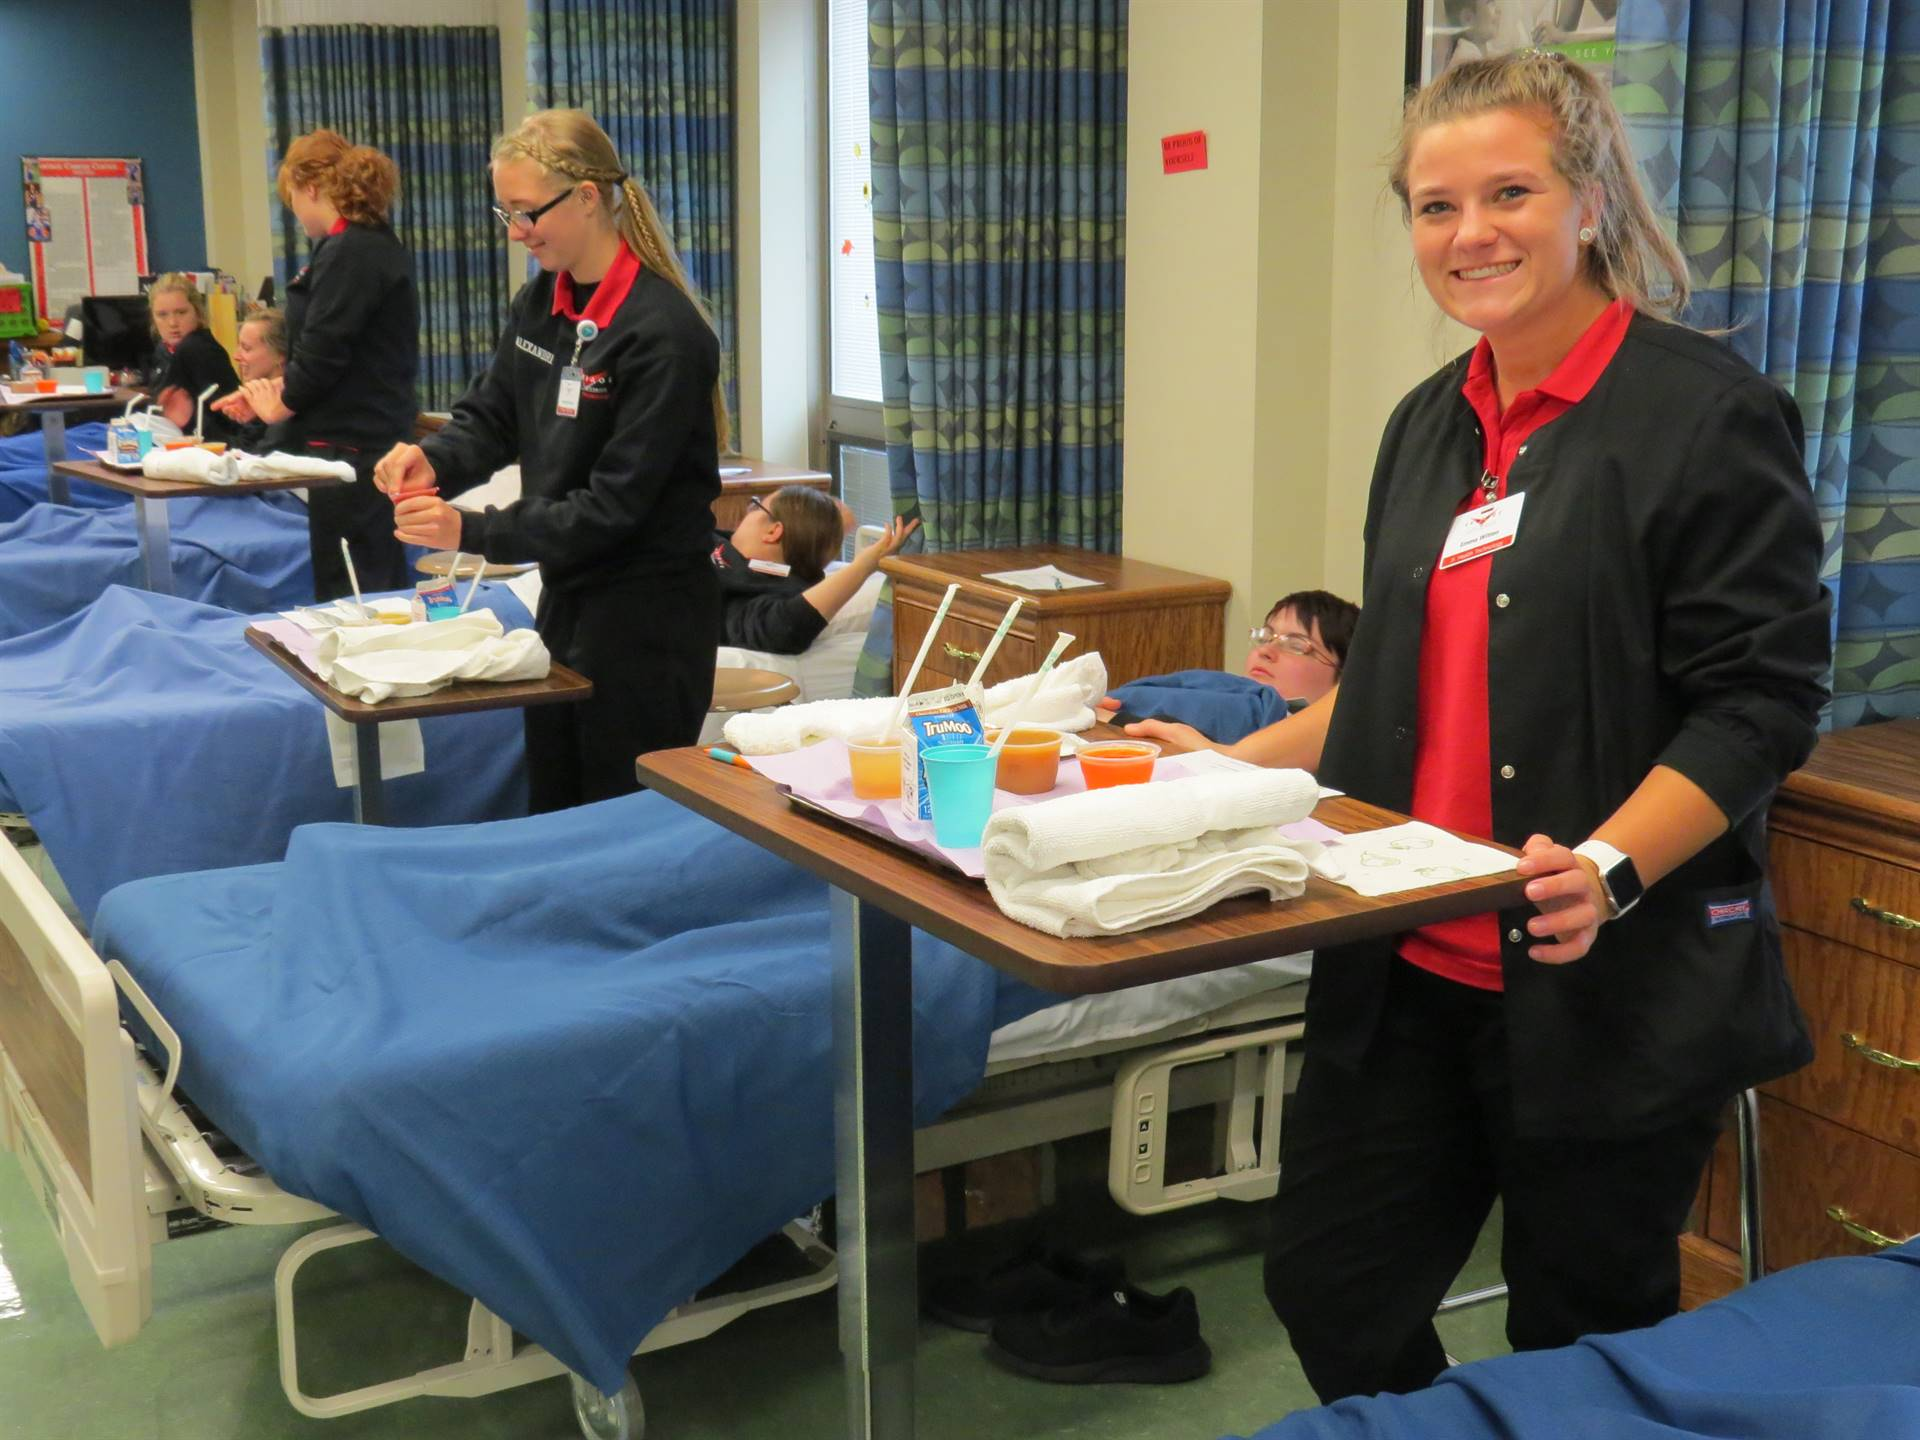 Health Technology students prepare to feed a resident.